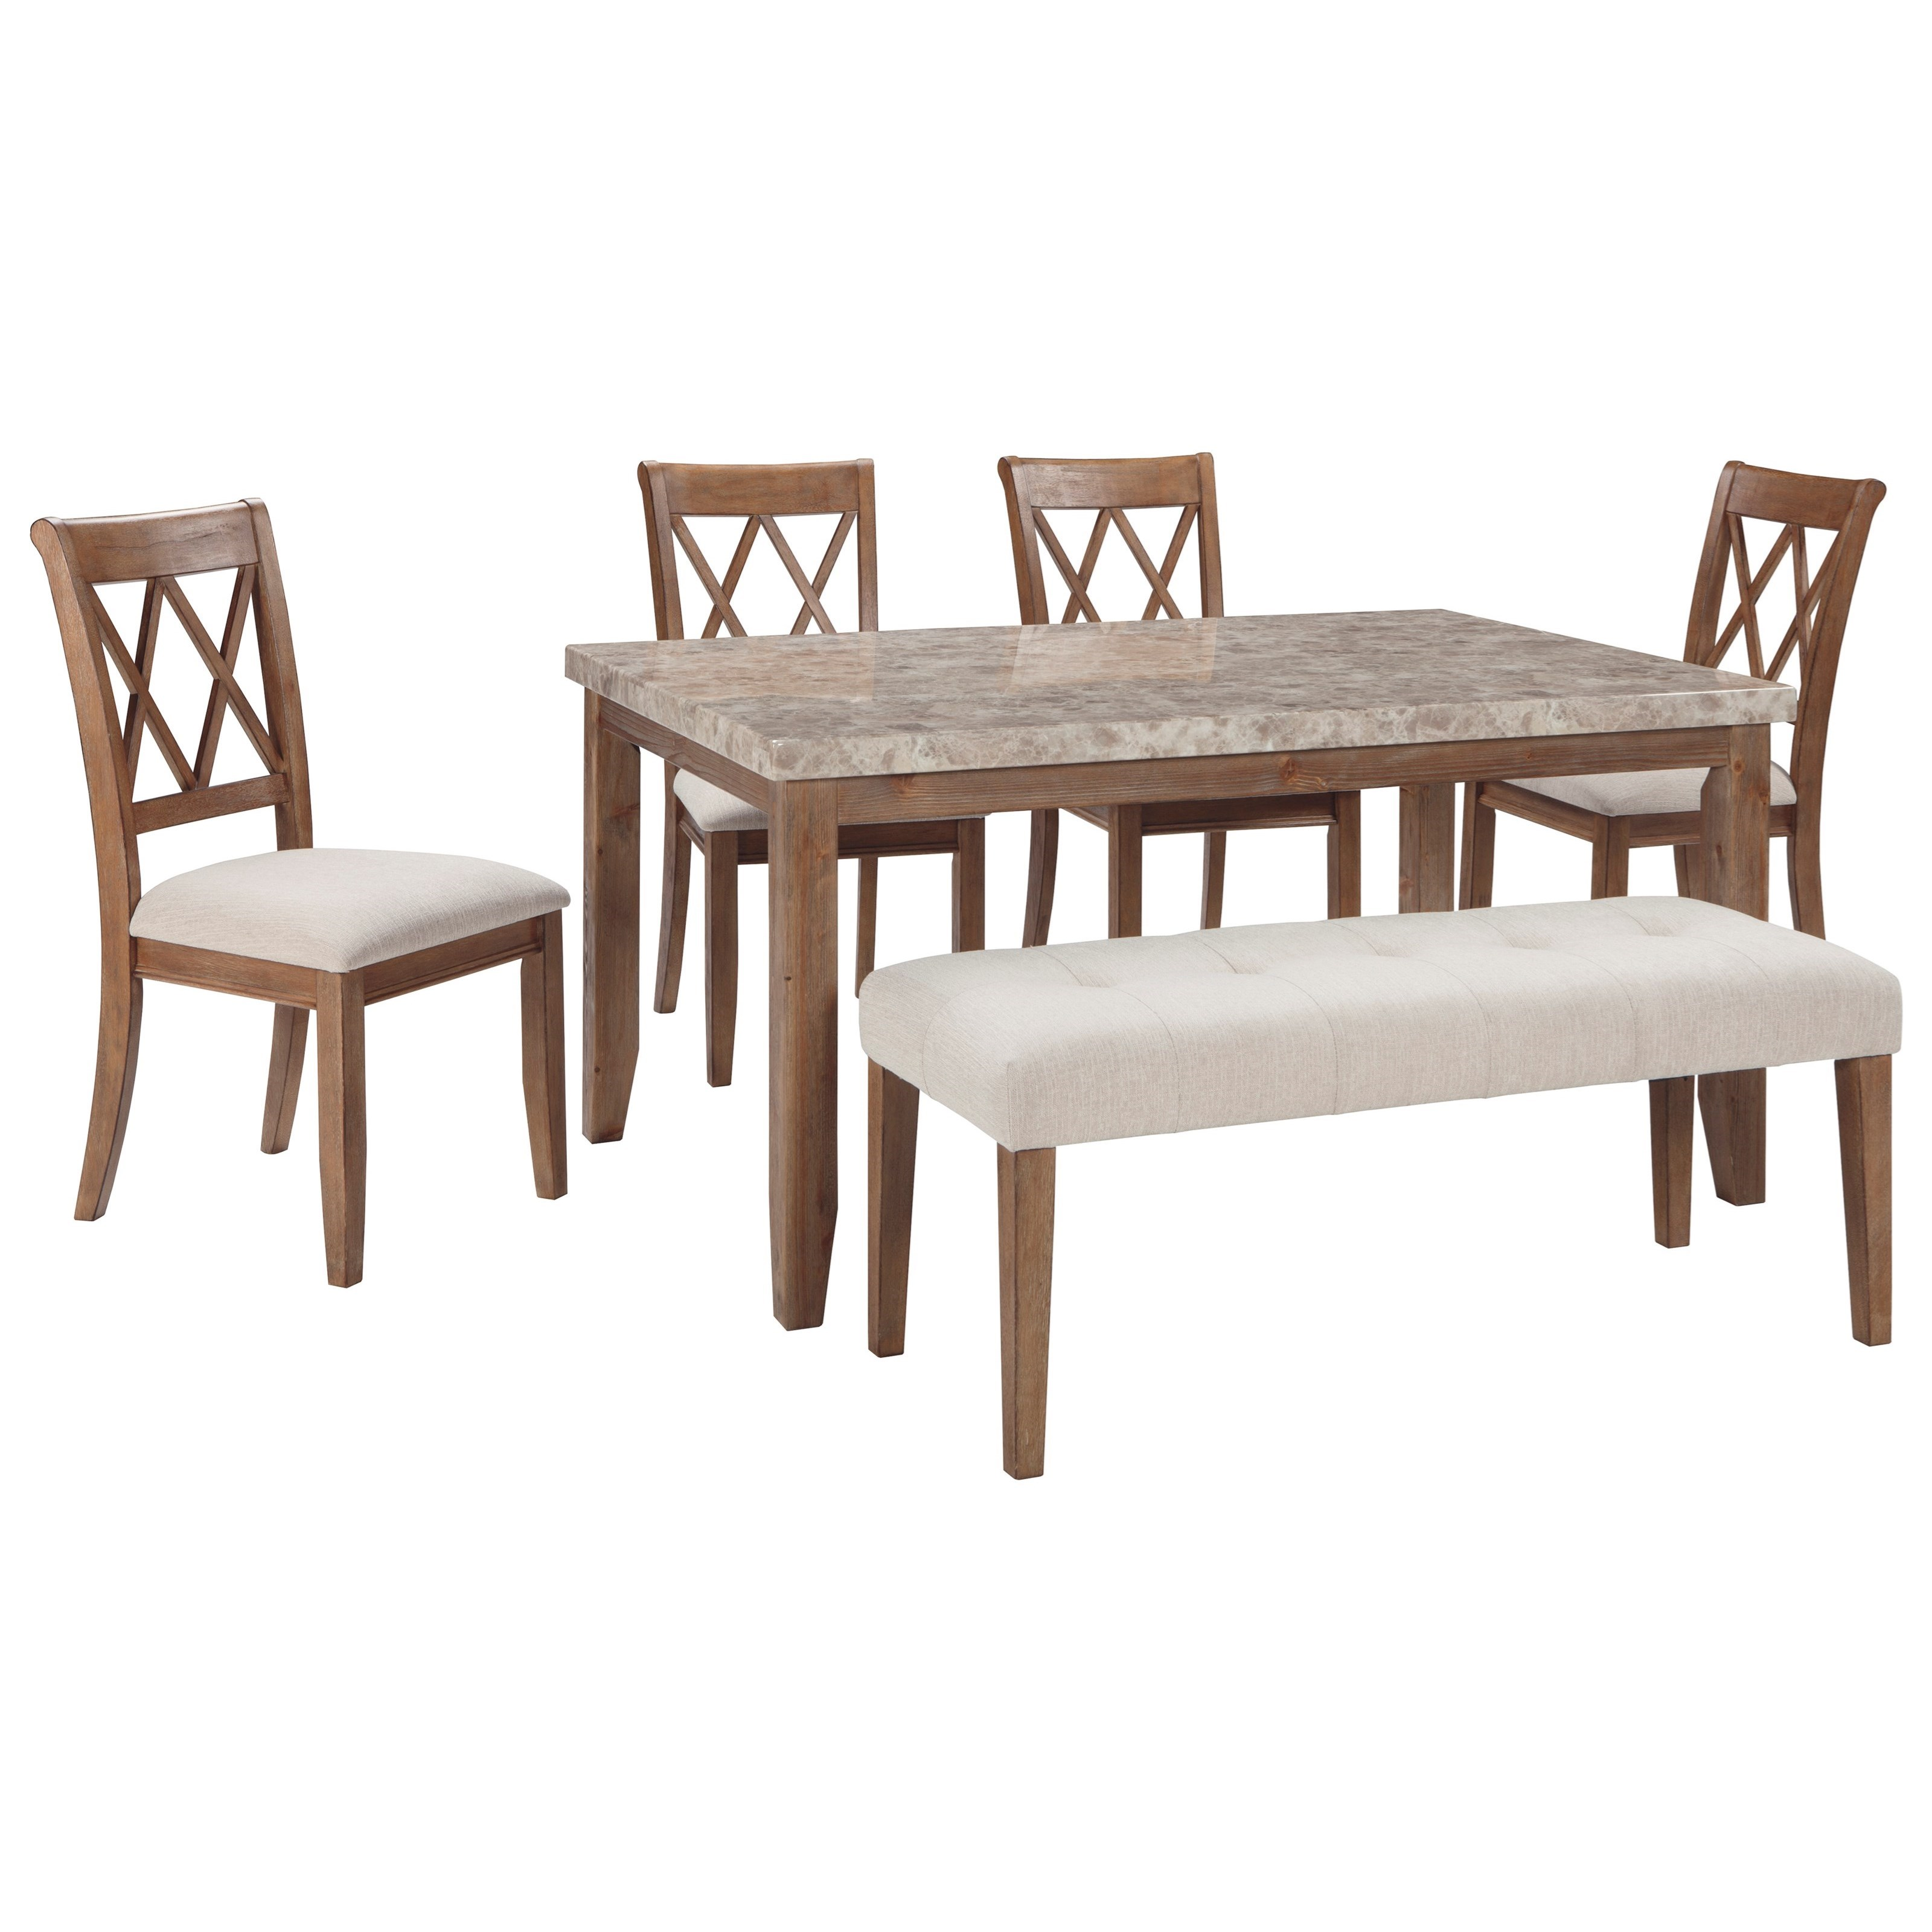 Signature Design by Ashley Narvilla 6-Piece Rectangular Table Set with Bench - Item Number: D559-25+4x01+00